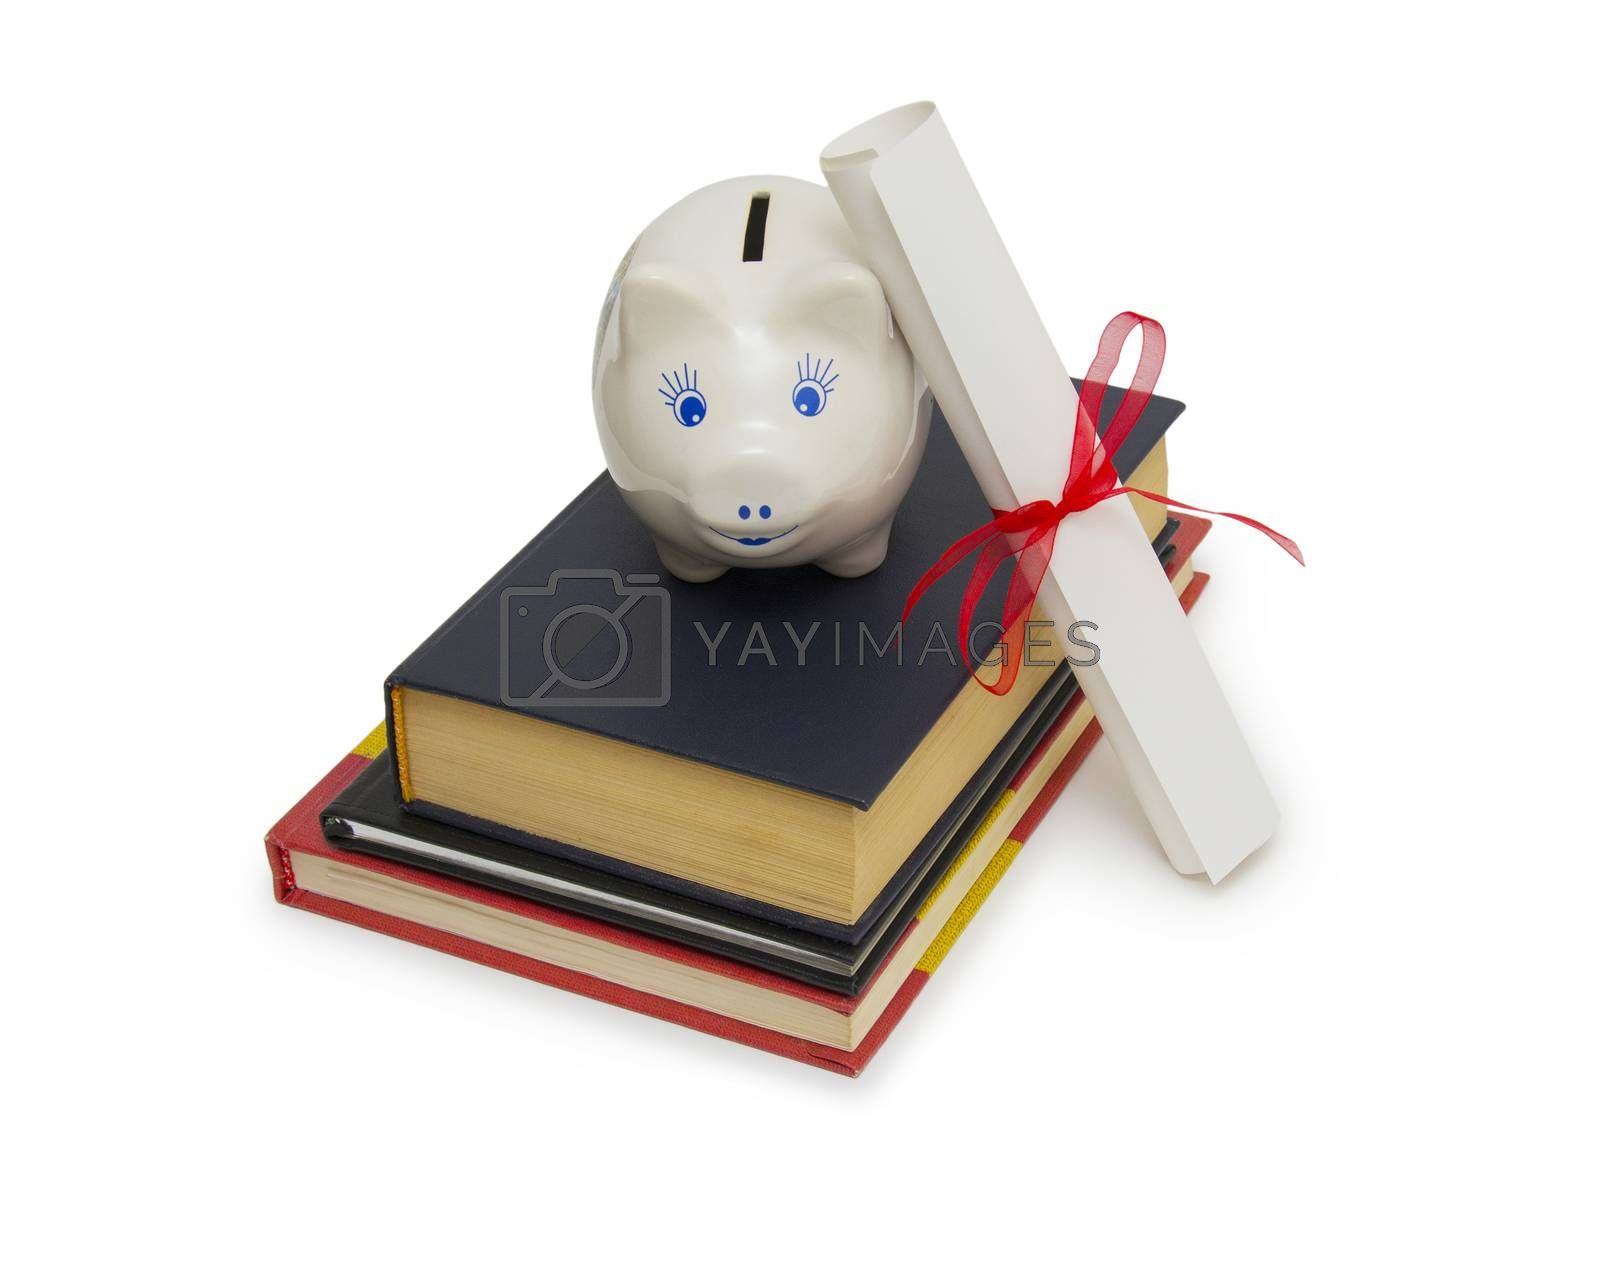 Royalty free image of Education fund, concept of saving for college by cocoo